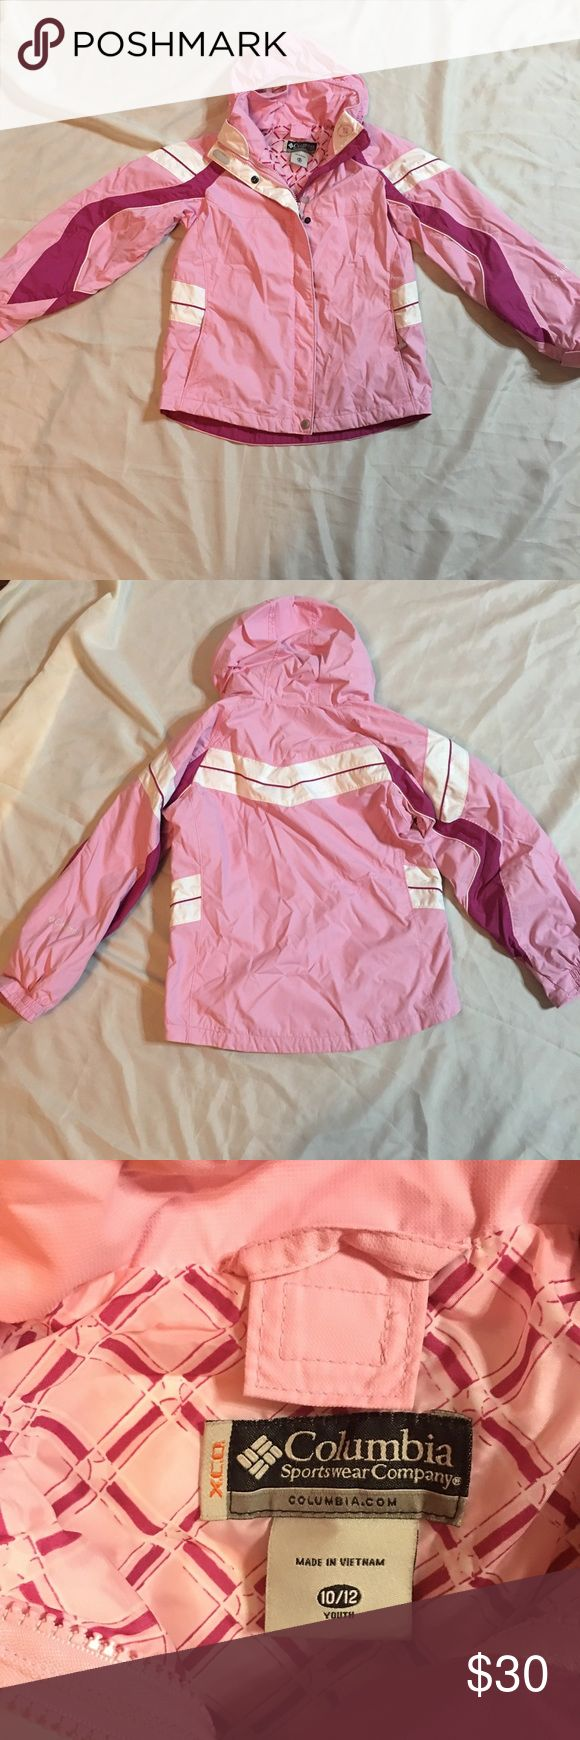 Columbia Sportswear Waterproof Youth Coat 10-12 Super nice Columbia Sportswear girls coat!  Size 10-12. There are a few smudges that could be cleaned but I have well water and it stains. Zips and snaps up front. Has a good that you can fold up inside the coat. Columbia Jackets & Coats Raincoats